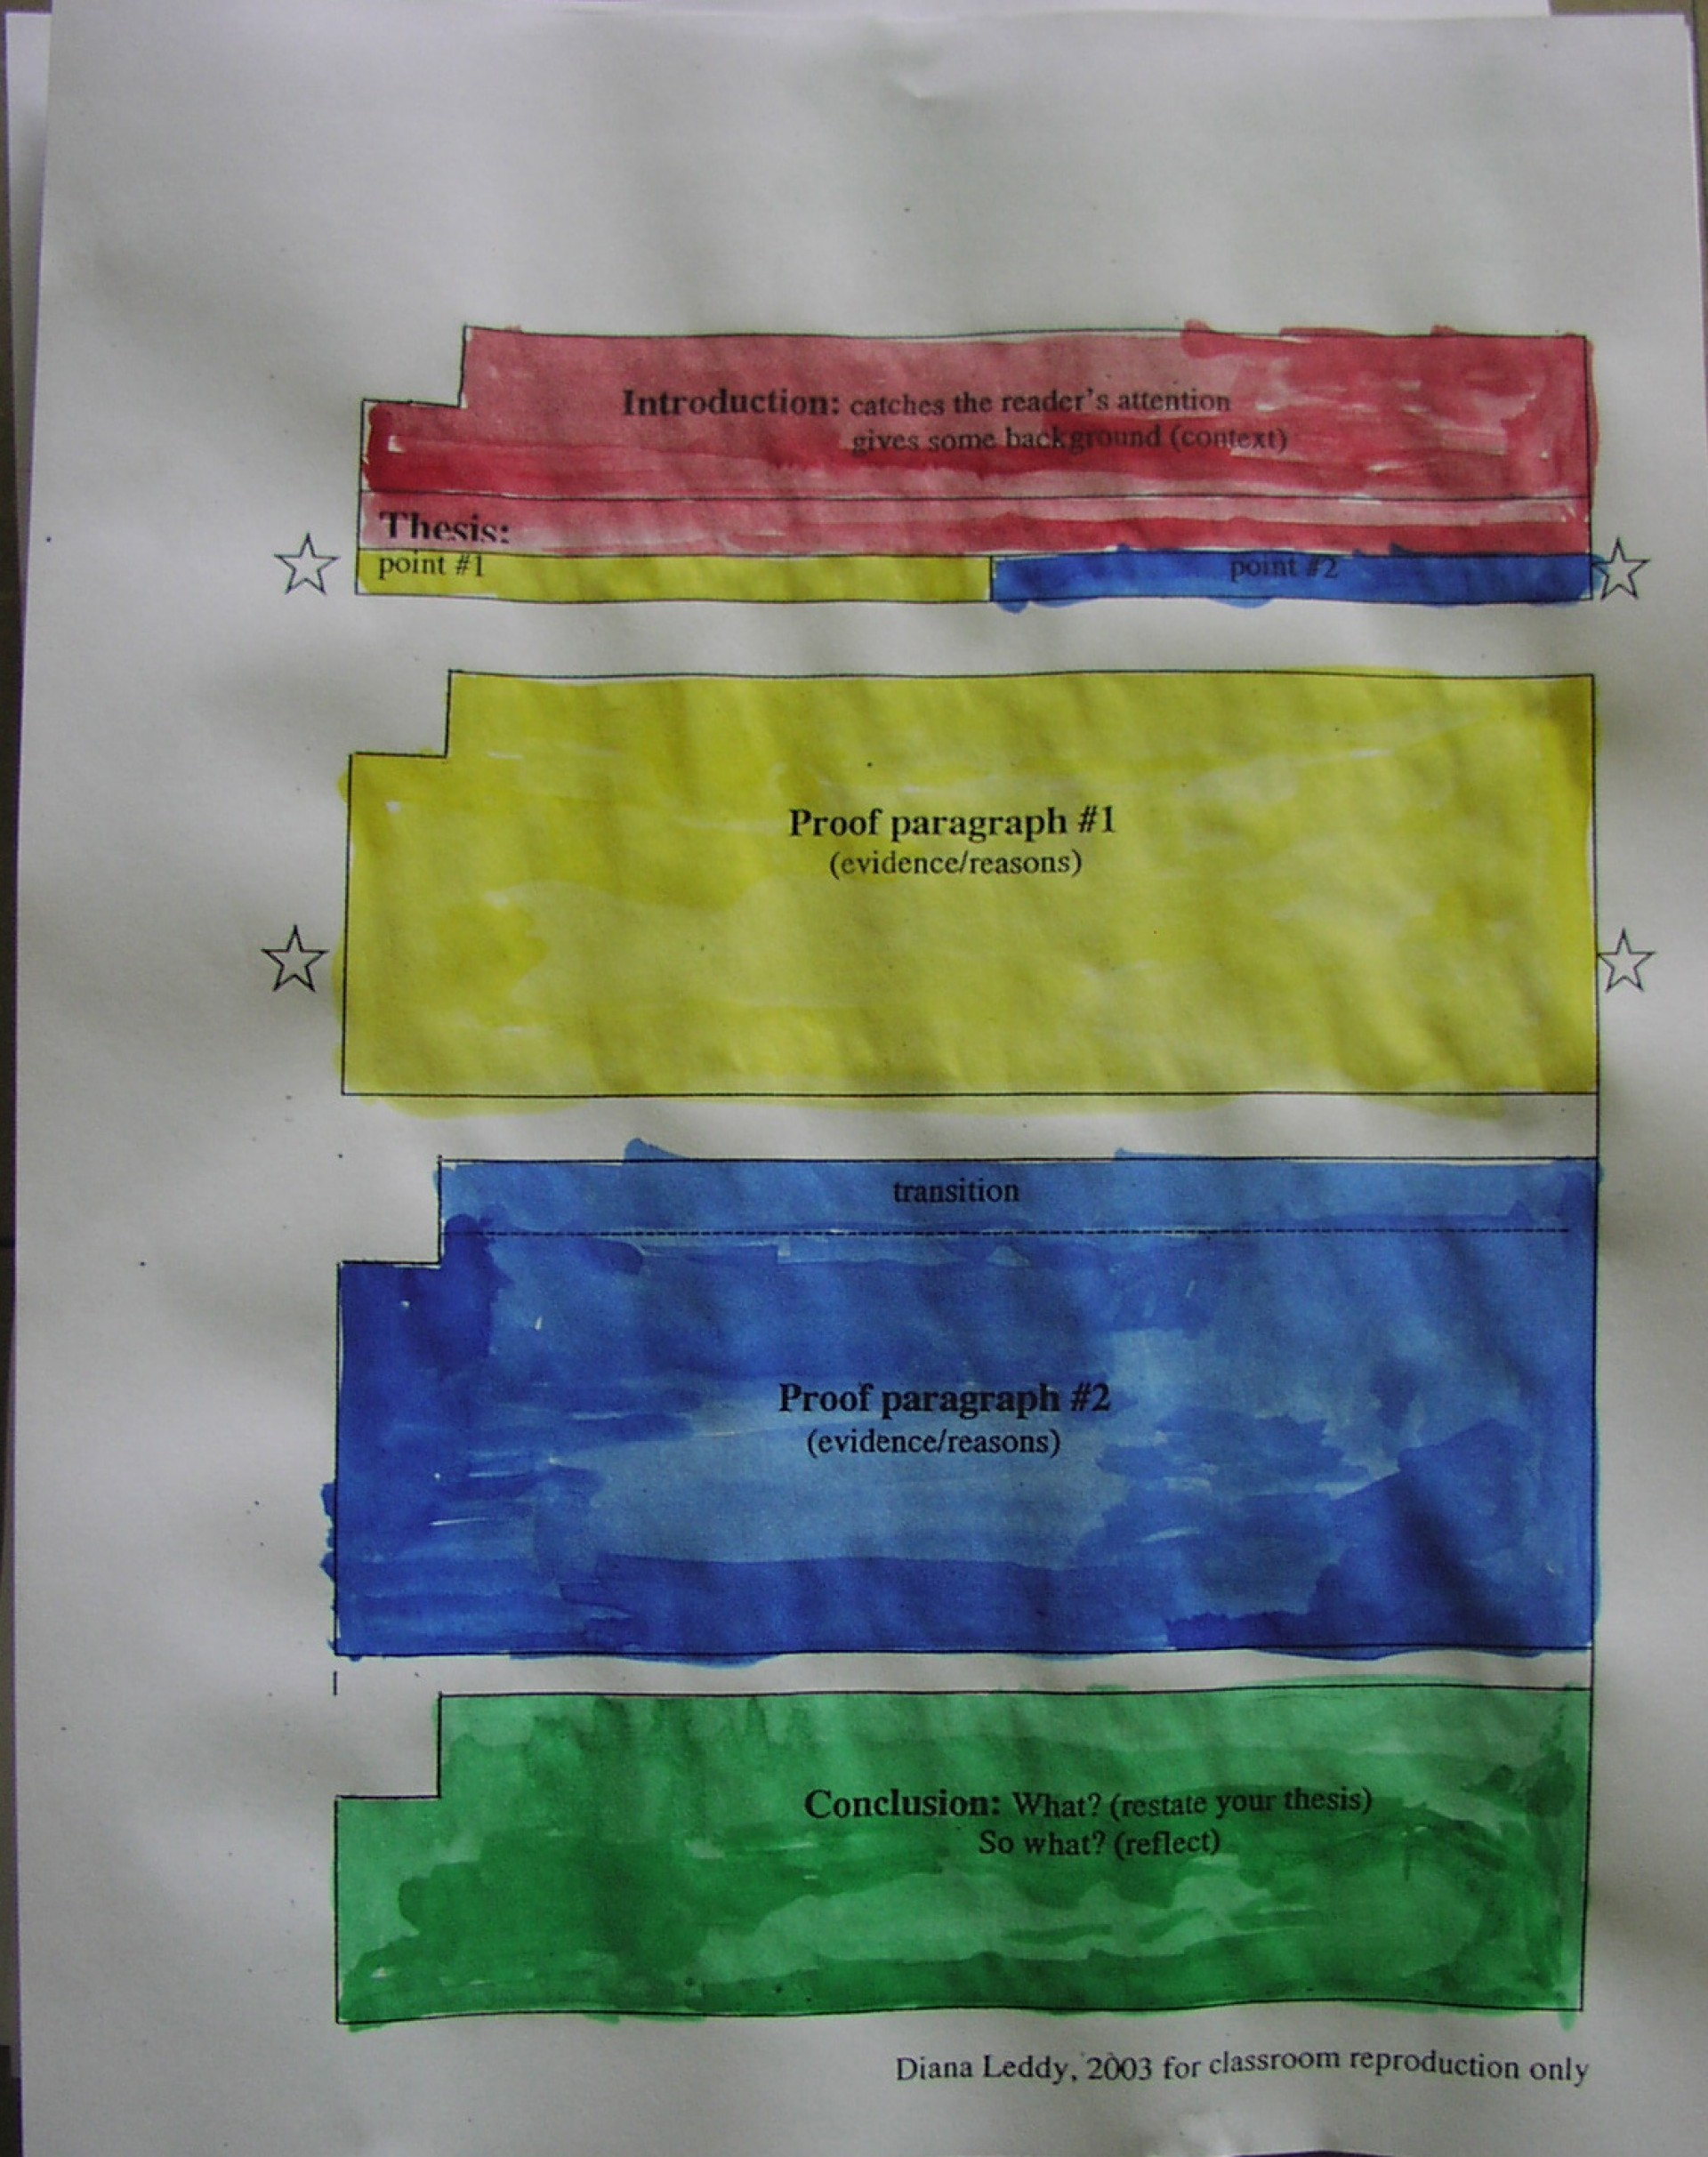 001 Essay Example P1010050 Jpg Fantastic Painted Painting Description Sample Structure 1920